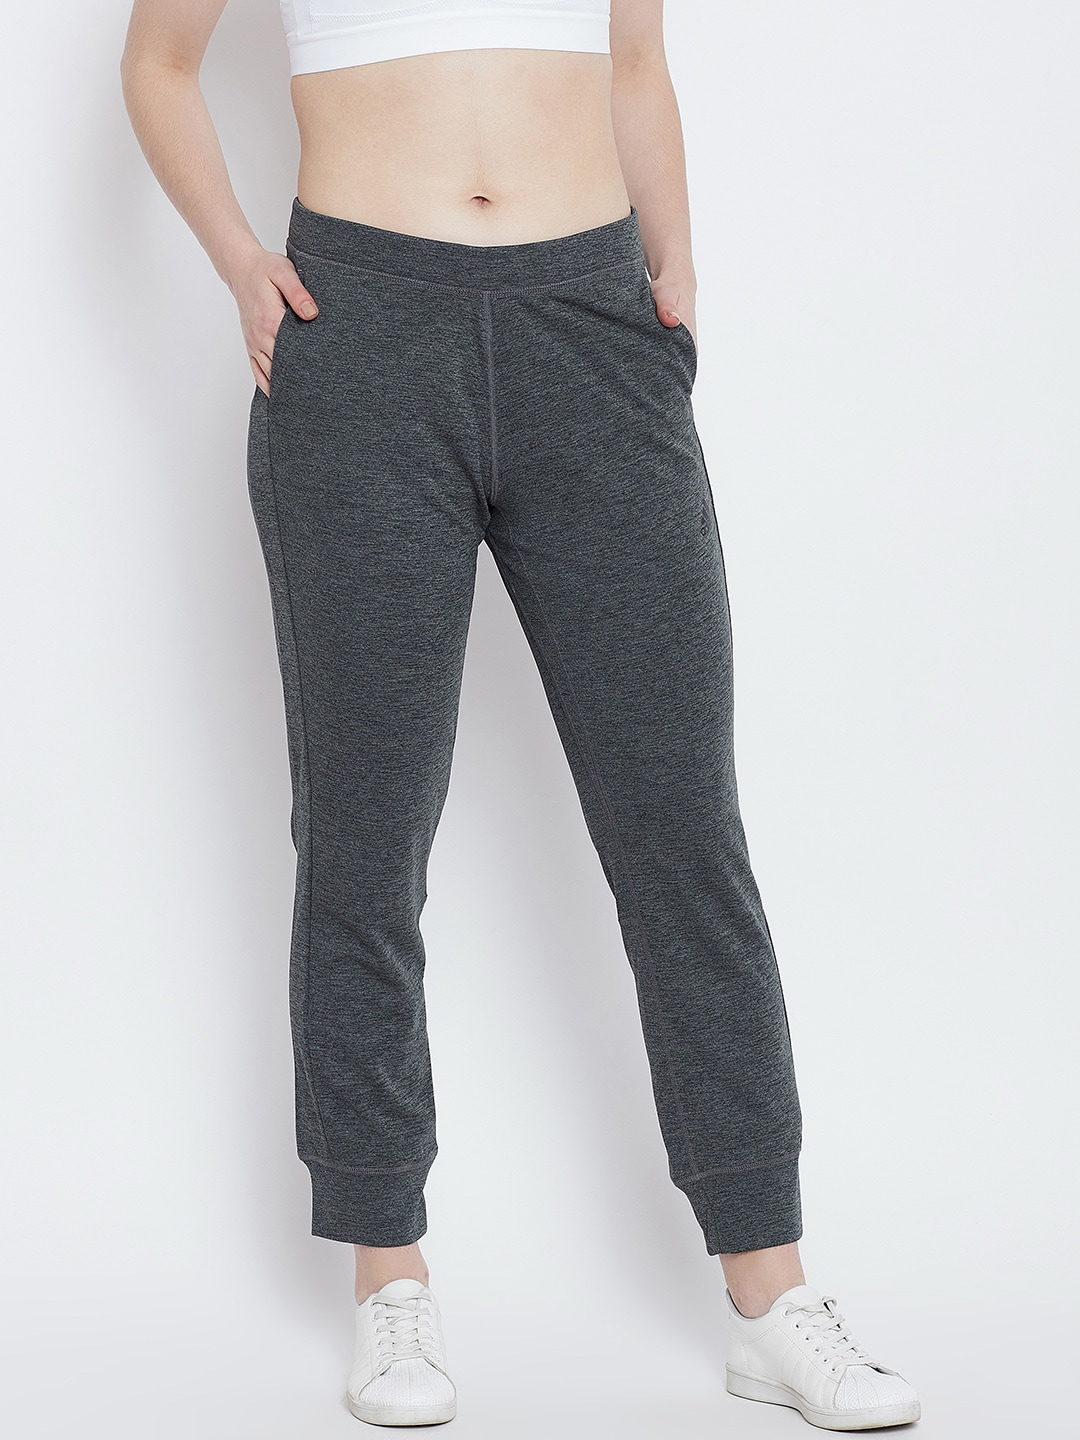 dc7d4f4abed adidas Track Pants - Buy Track Pants from adidas Online